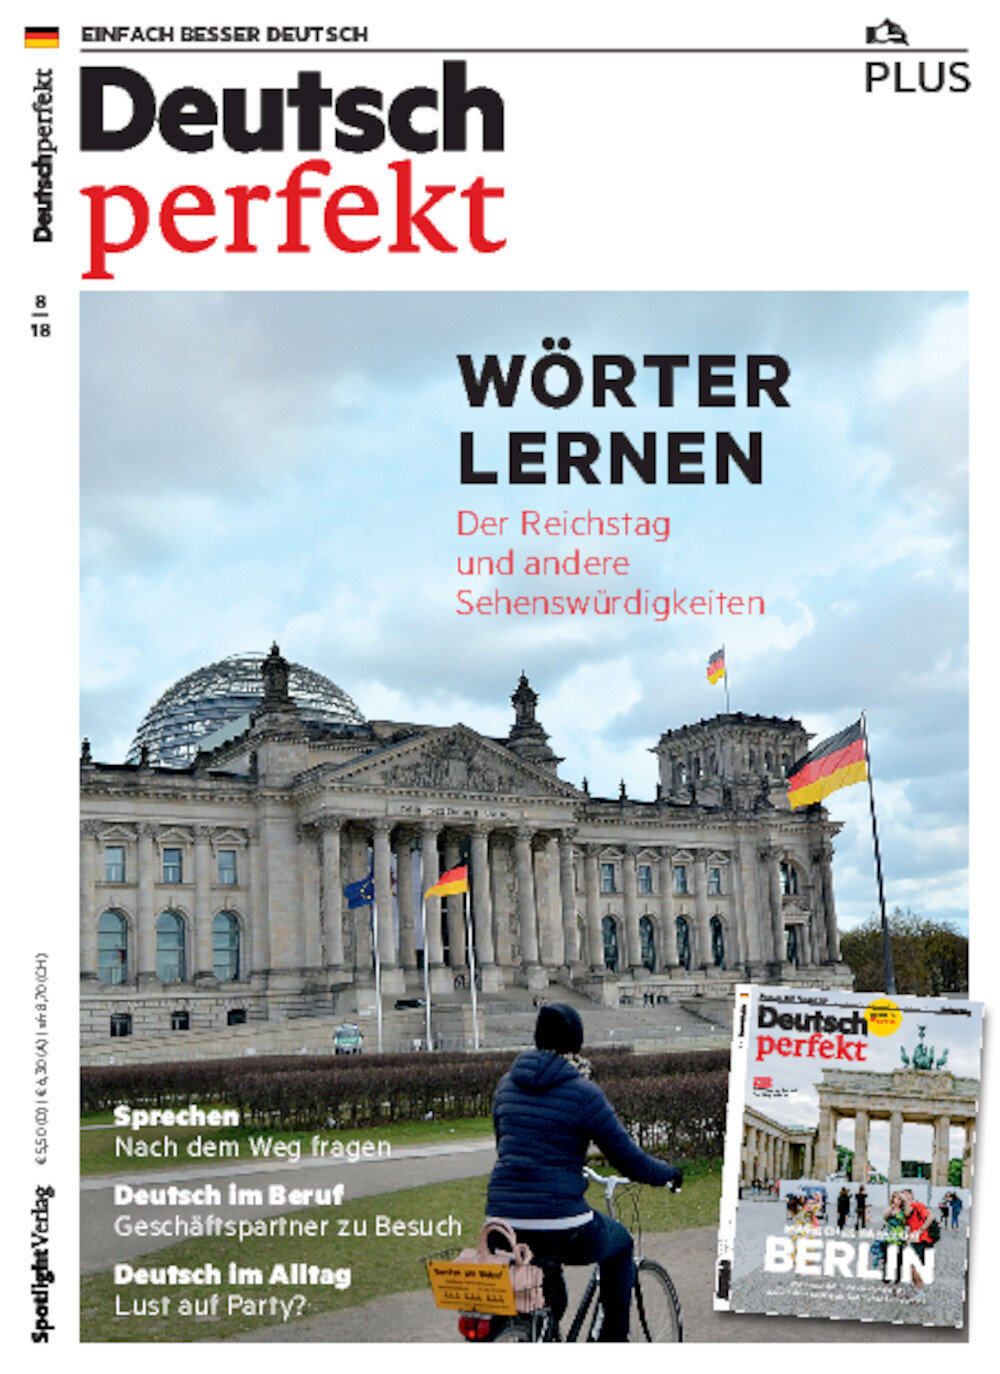 Deutsch perfekt PLUS ePaper 08/2018